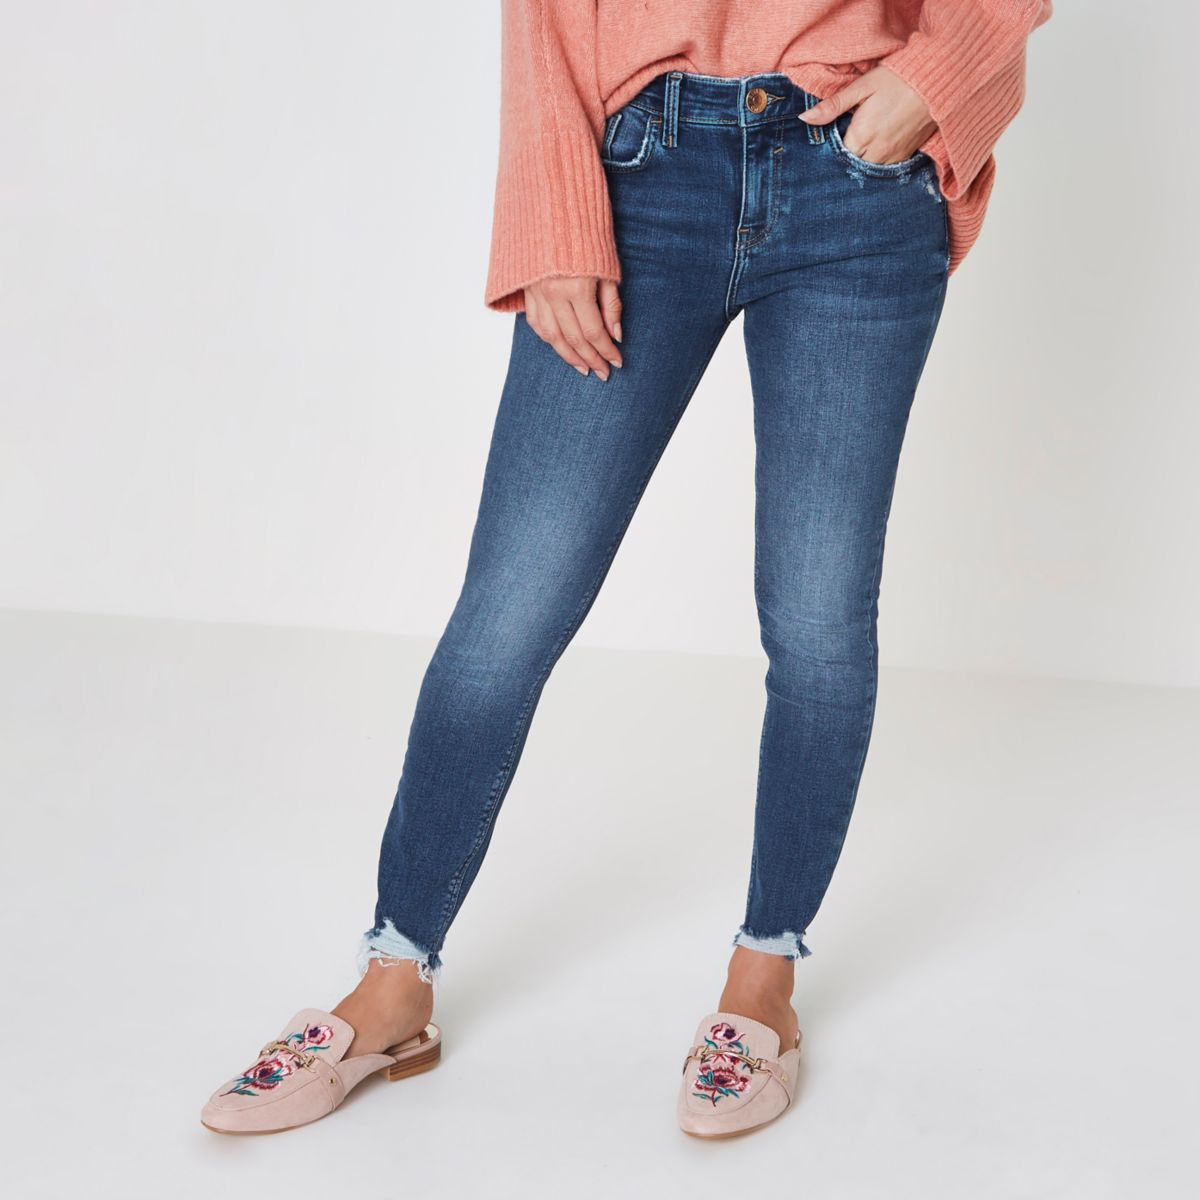 Petite Skinny Jeans. Look fantastic in a pair of petite skinny jeans. Skinny jeans are a favorite for many women and, like most style of jeans, they are incredibly versatile. This great style of jeans can be available in many different designs, including cropped jeans, wide legs jeans and more.